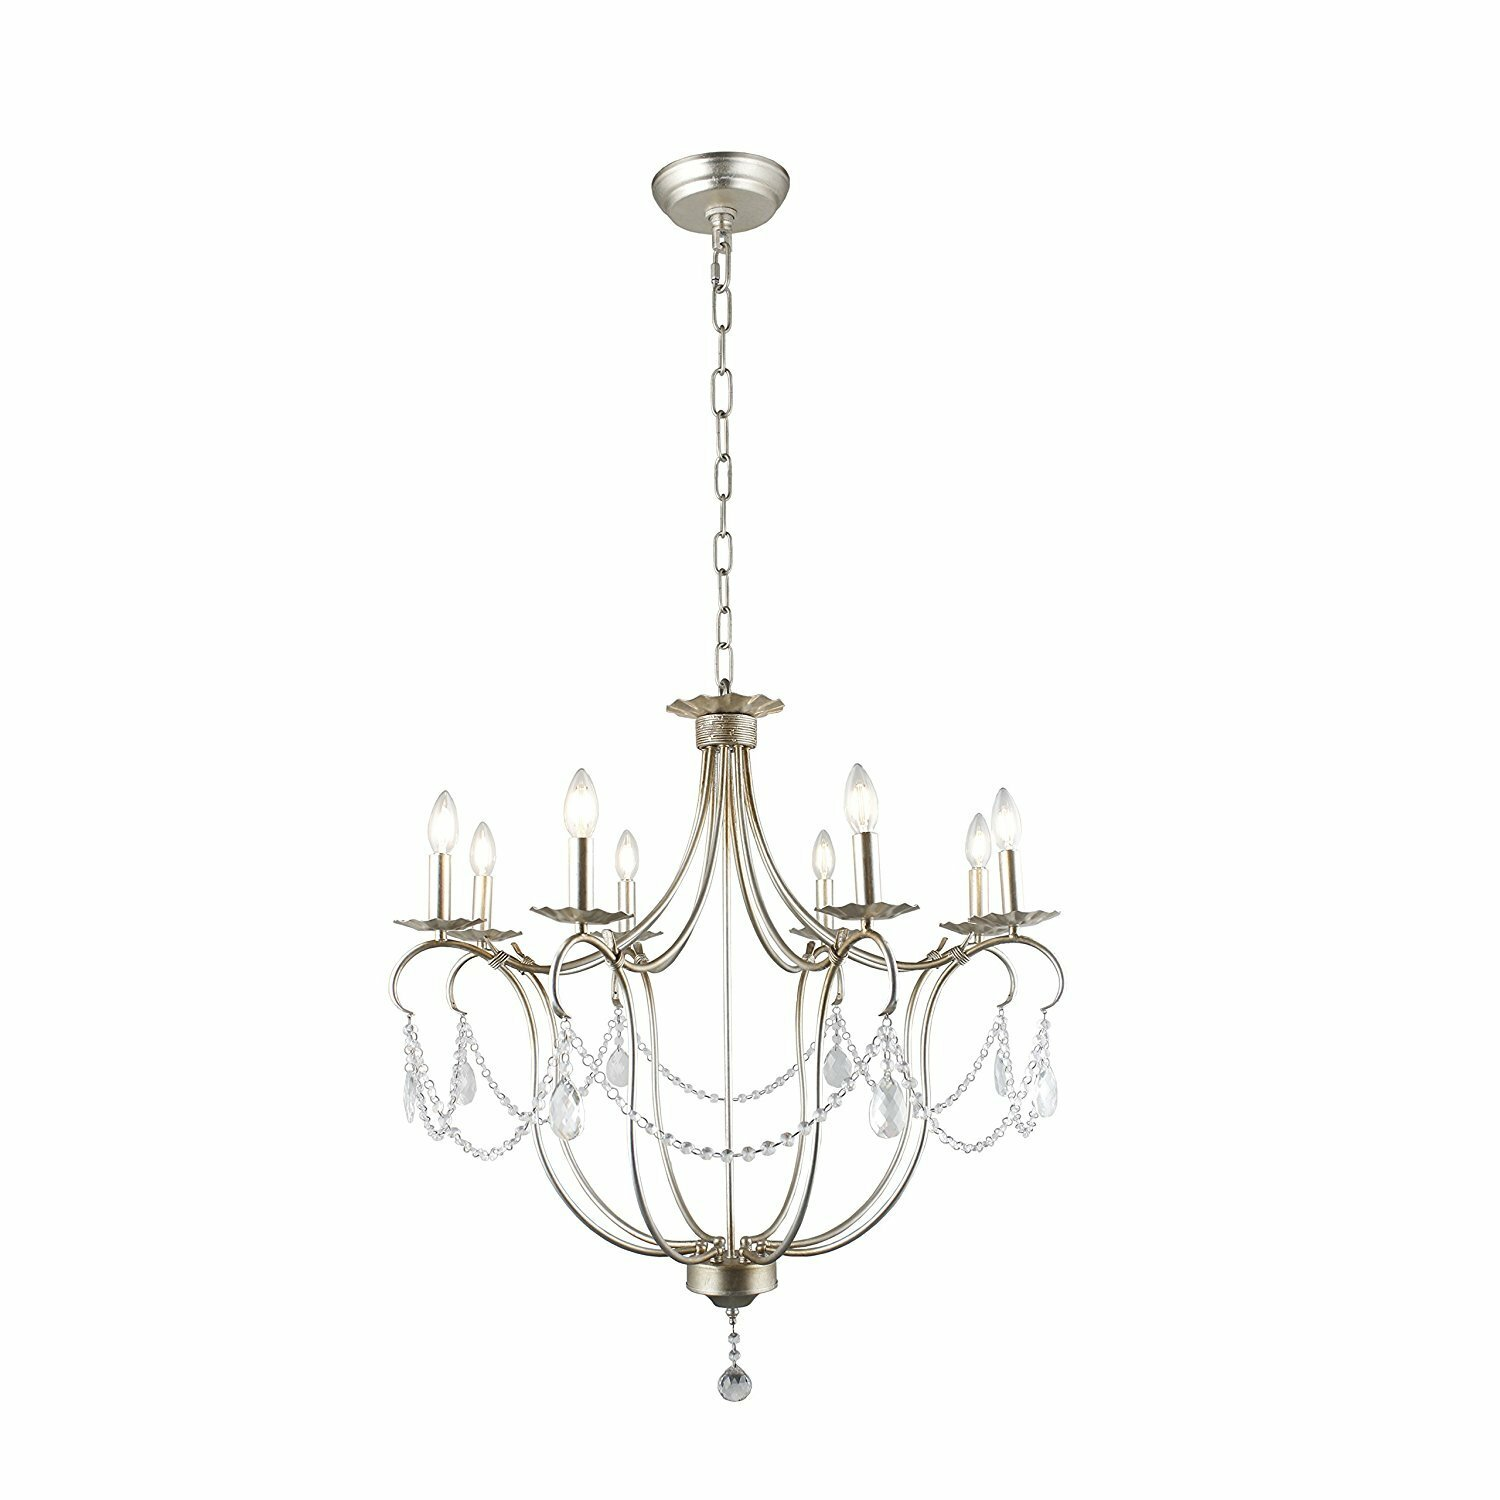 House Of Hampton Victorian Style Chandelier With Delicate Arms And Decorative Centre Column And Candelabra Lamps Ceiling Light Fixture Pendant Light Hallway Foyer Living Room Polished Silver 8 Light 32 Inches Wayfair Ca